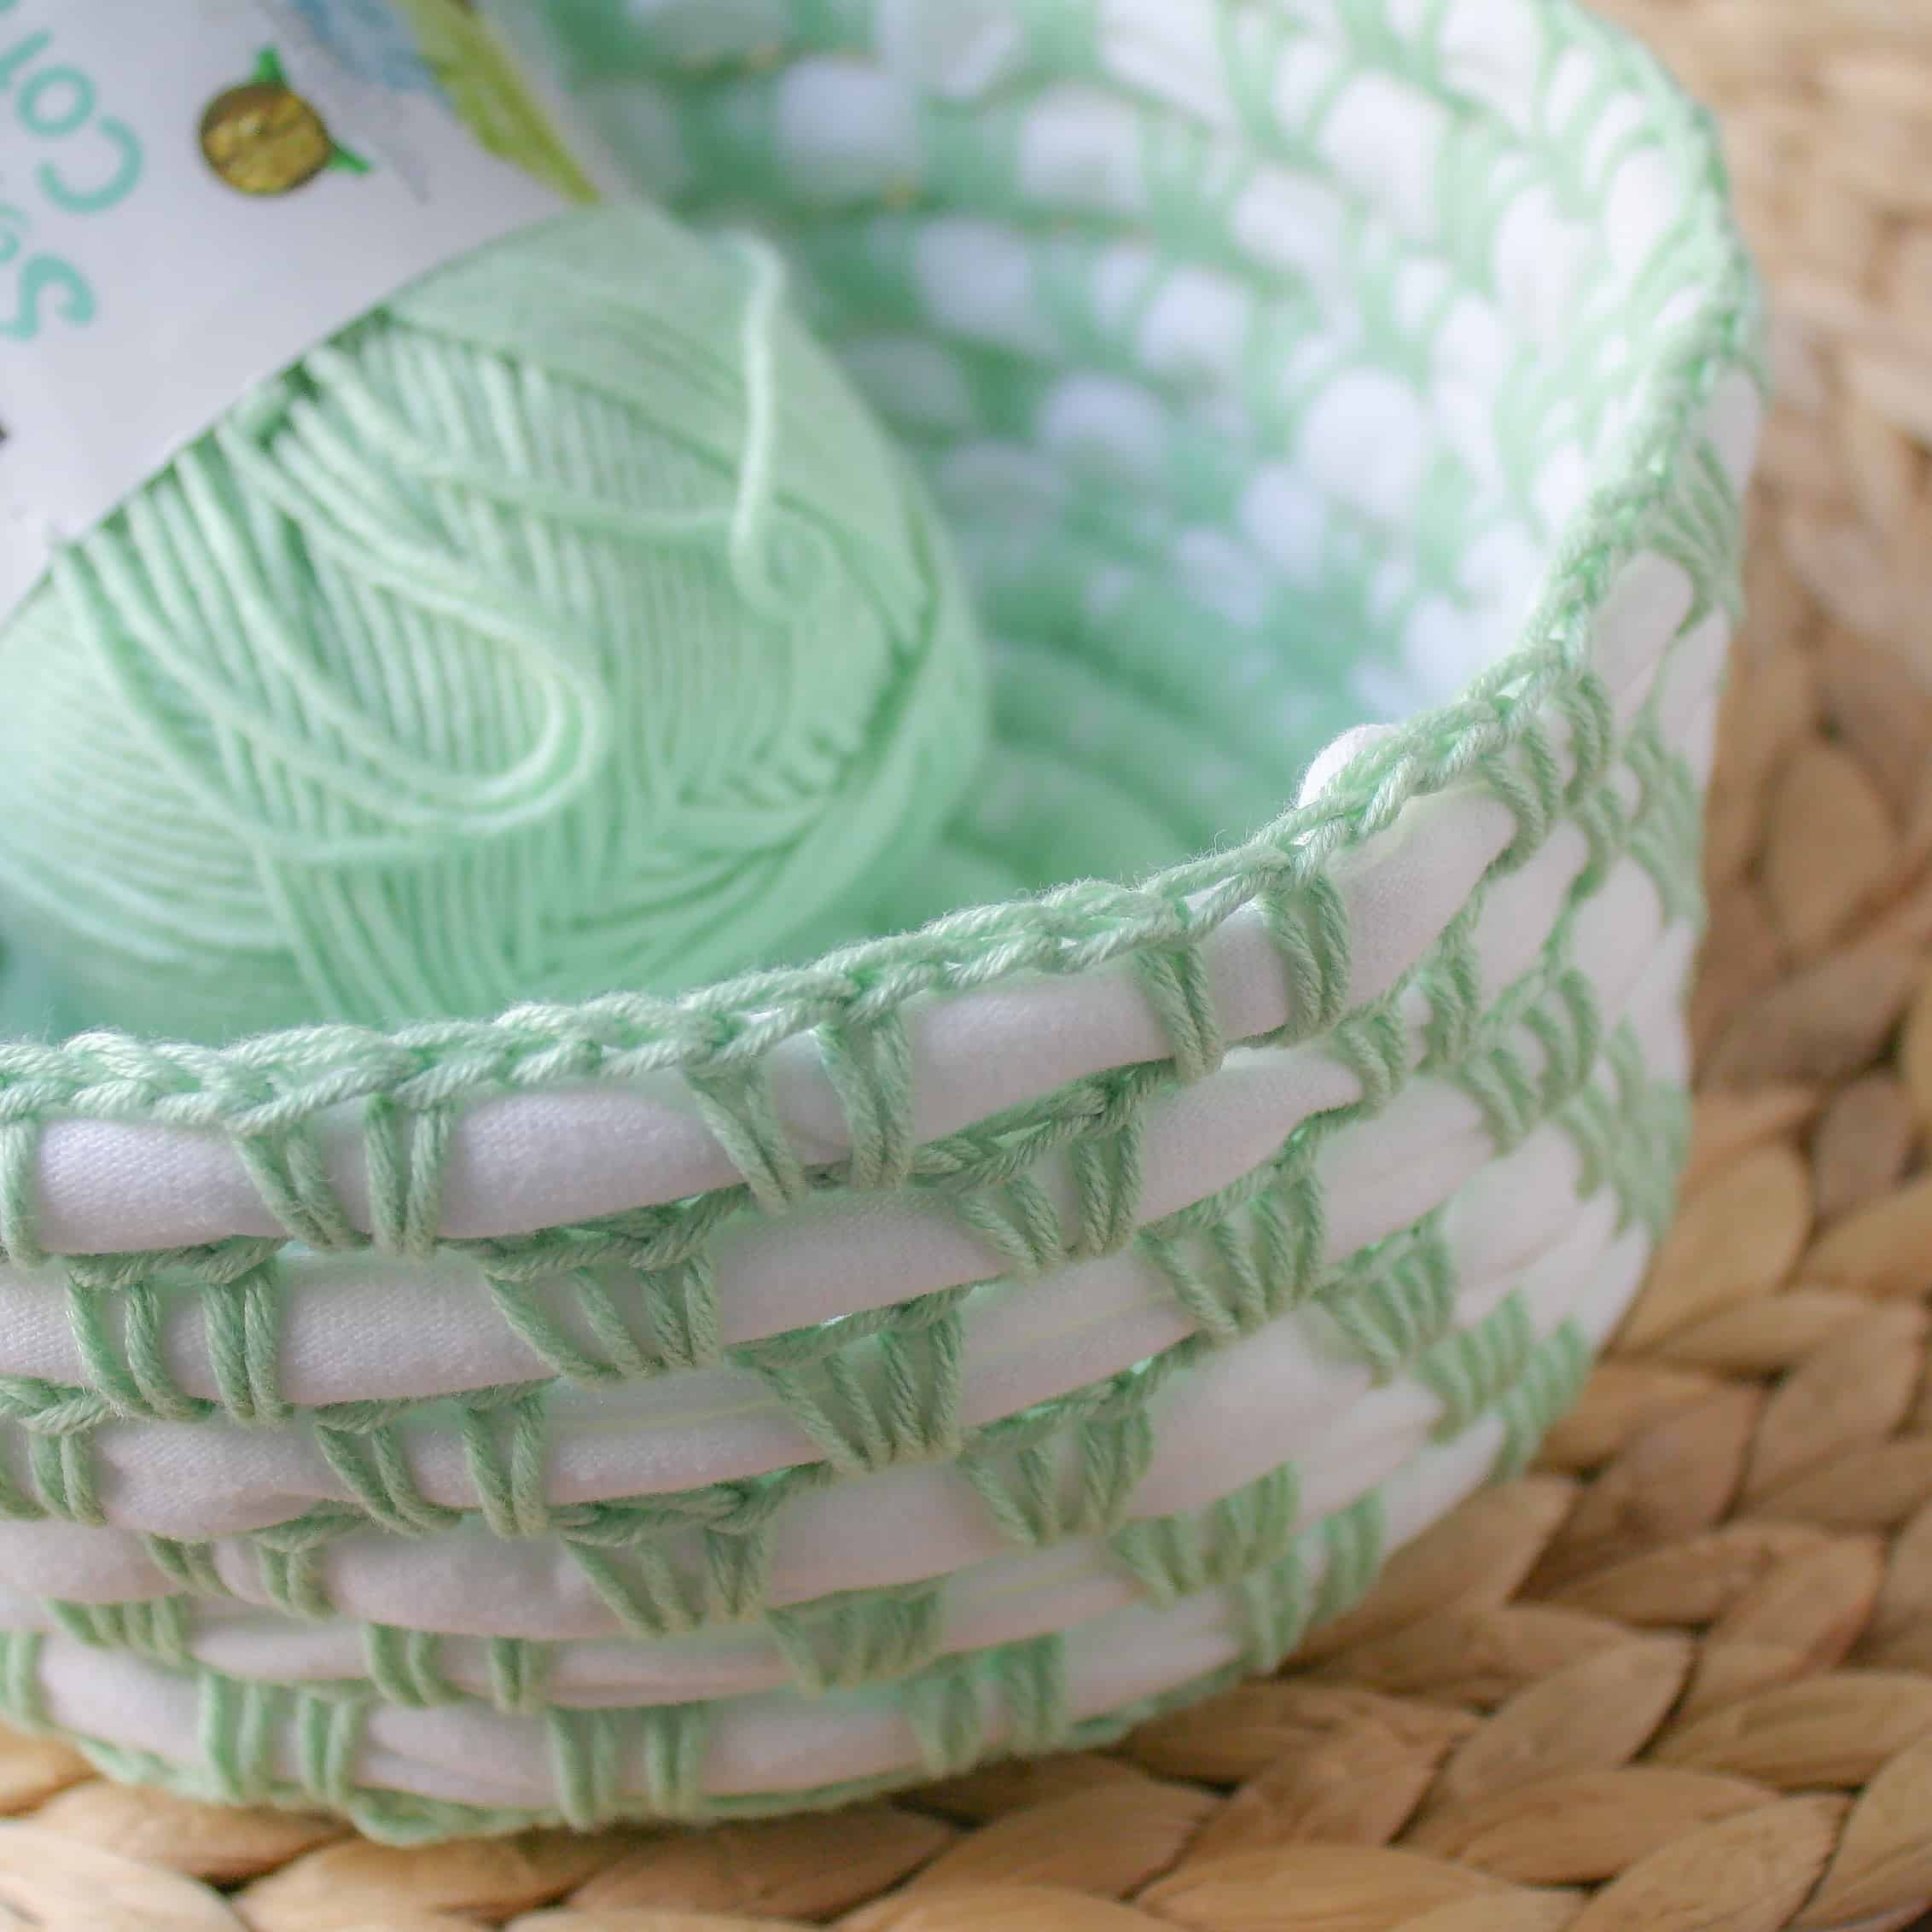 Use this free crochet pattern and photo tutorial to epicycle old material into usable baskets.